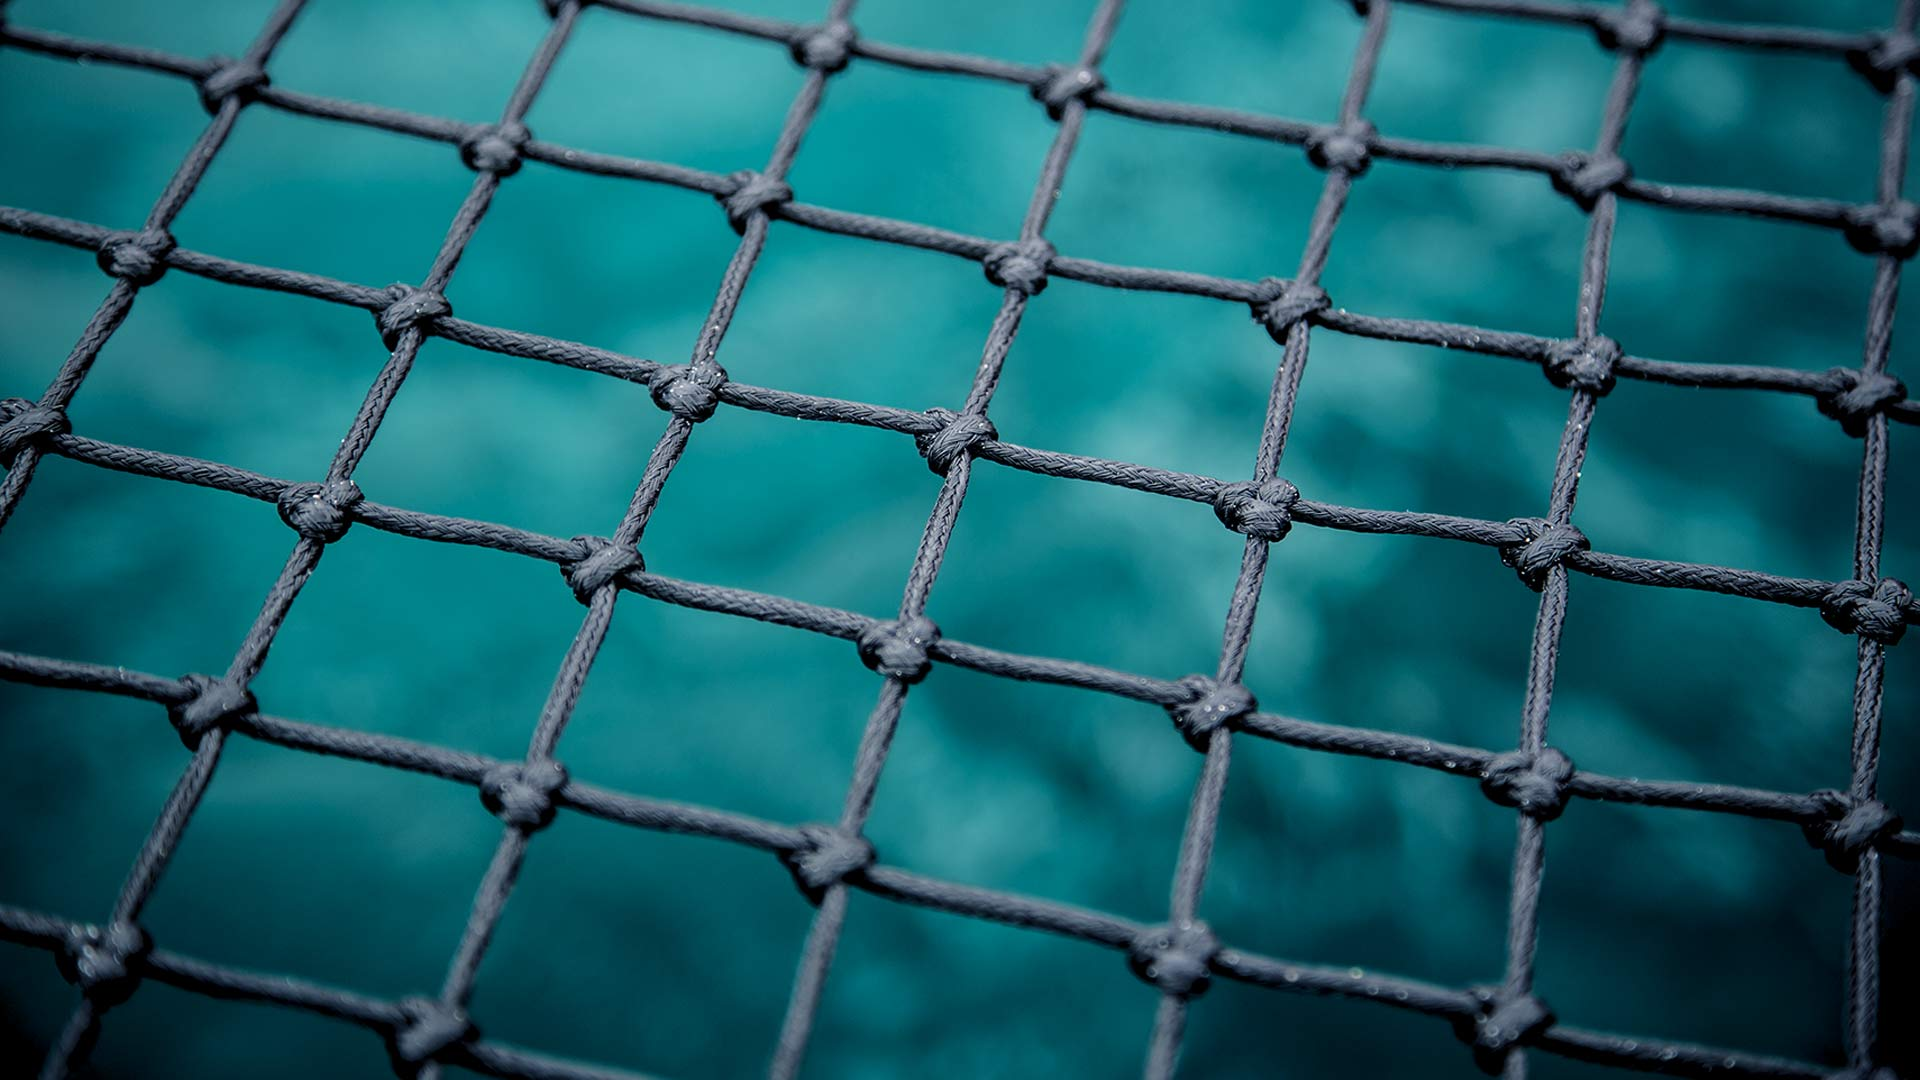 kl curacao netting image